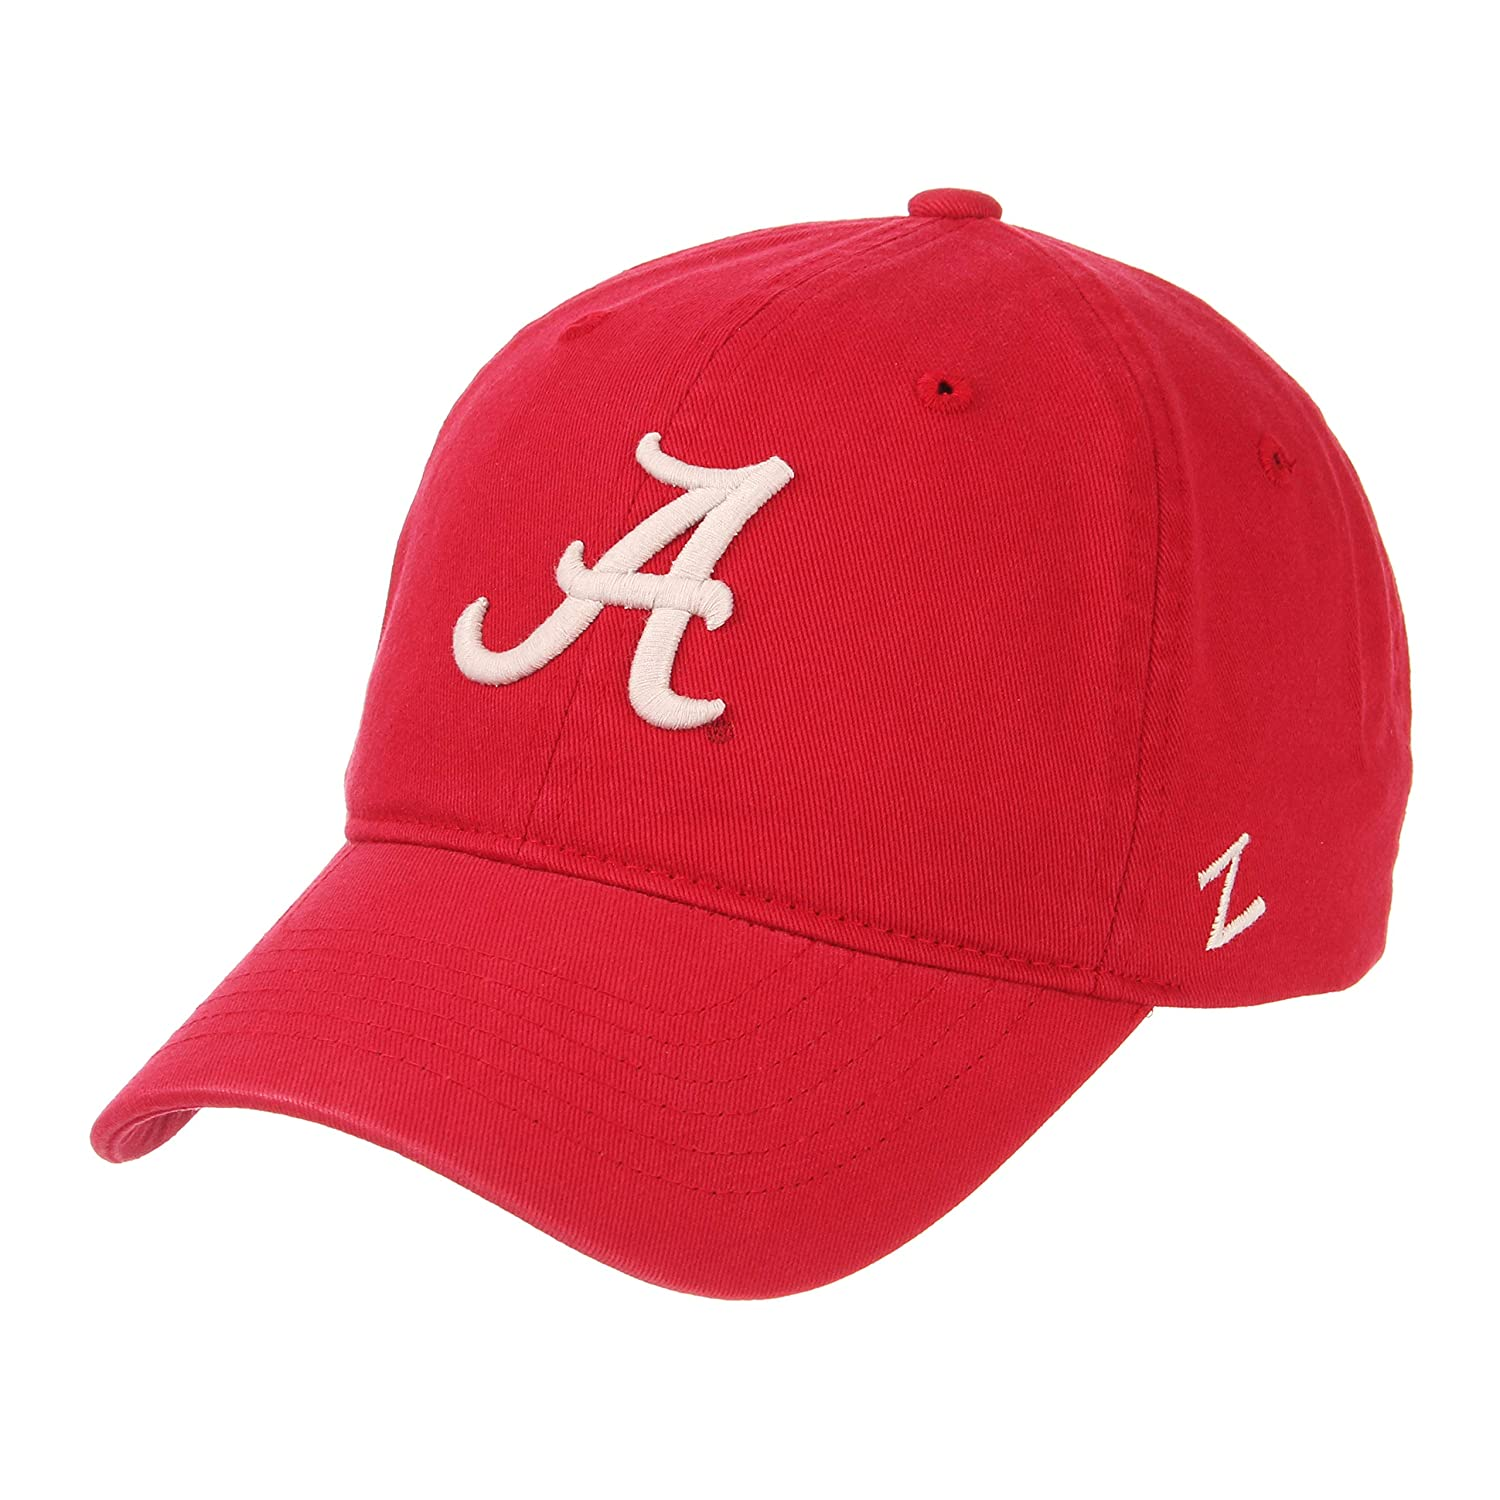 5b76f0387e7 Amazon.com   Zephyr NCAA Mens Relaxed Fit Scholarship- Adjustable Cotton  Crew Hat Cap-Alabama Crimson Tide   Sports   Outdoors